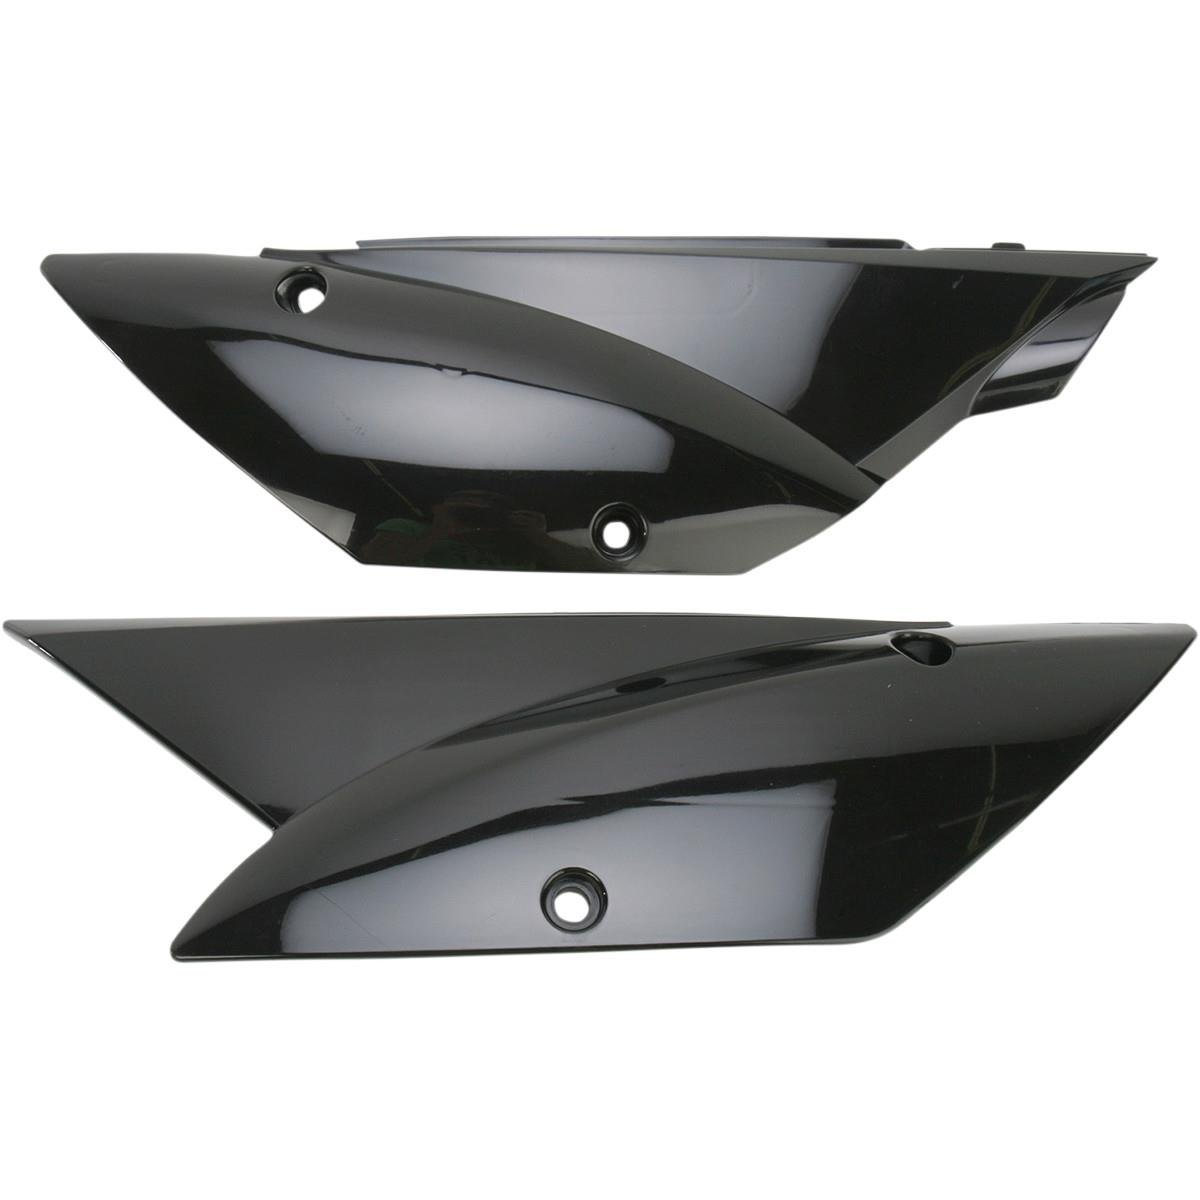 UFO Plastics Side Panel Black for Kawasaki KLX110 2010